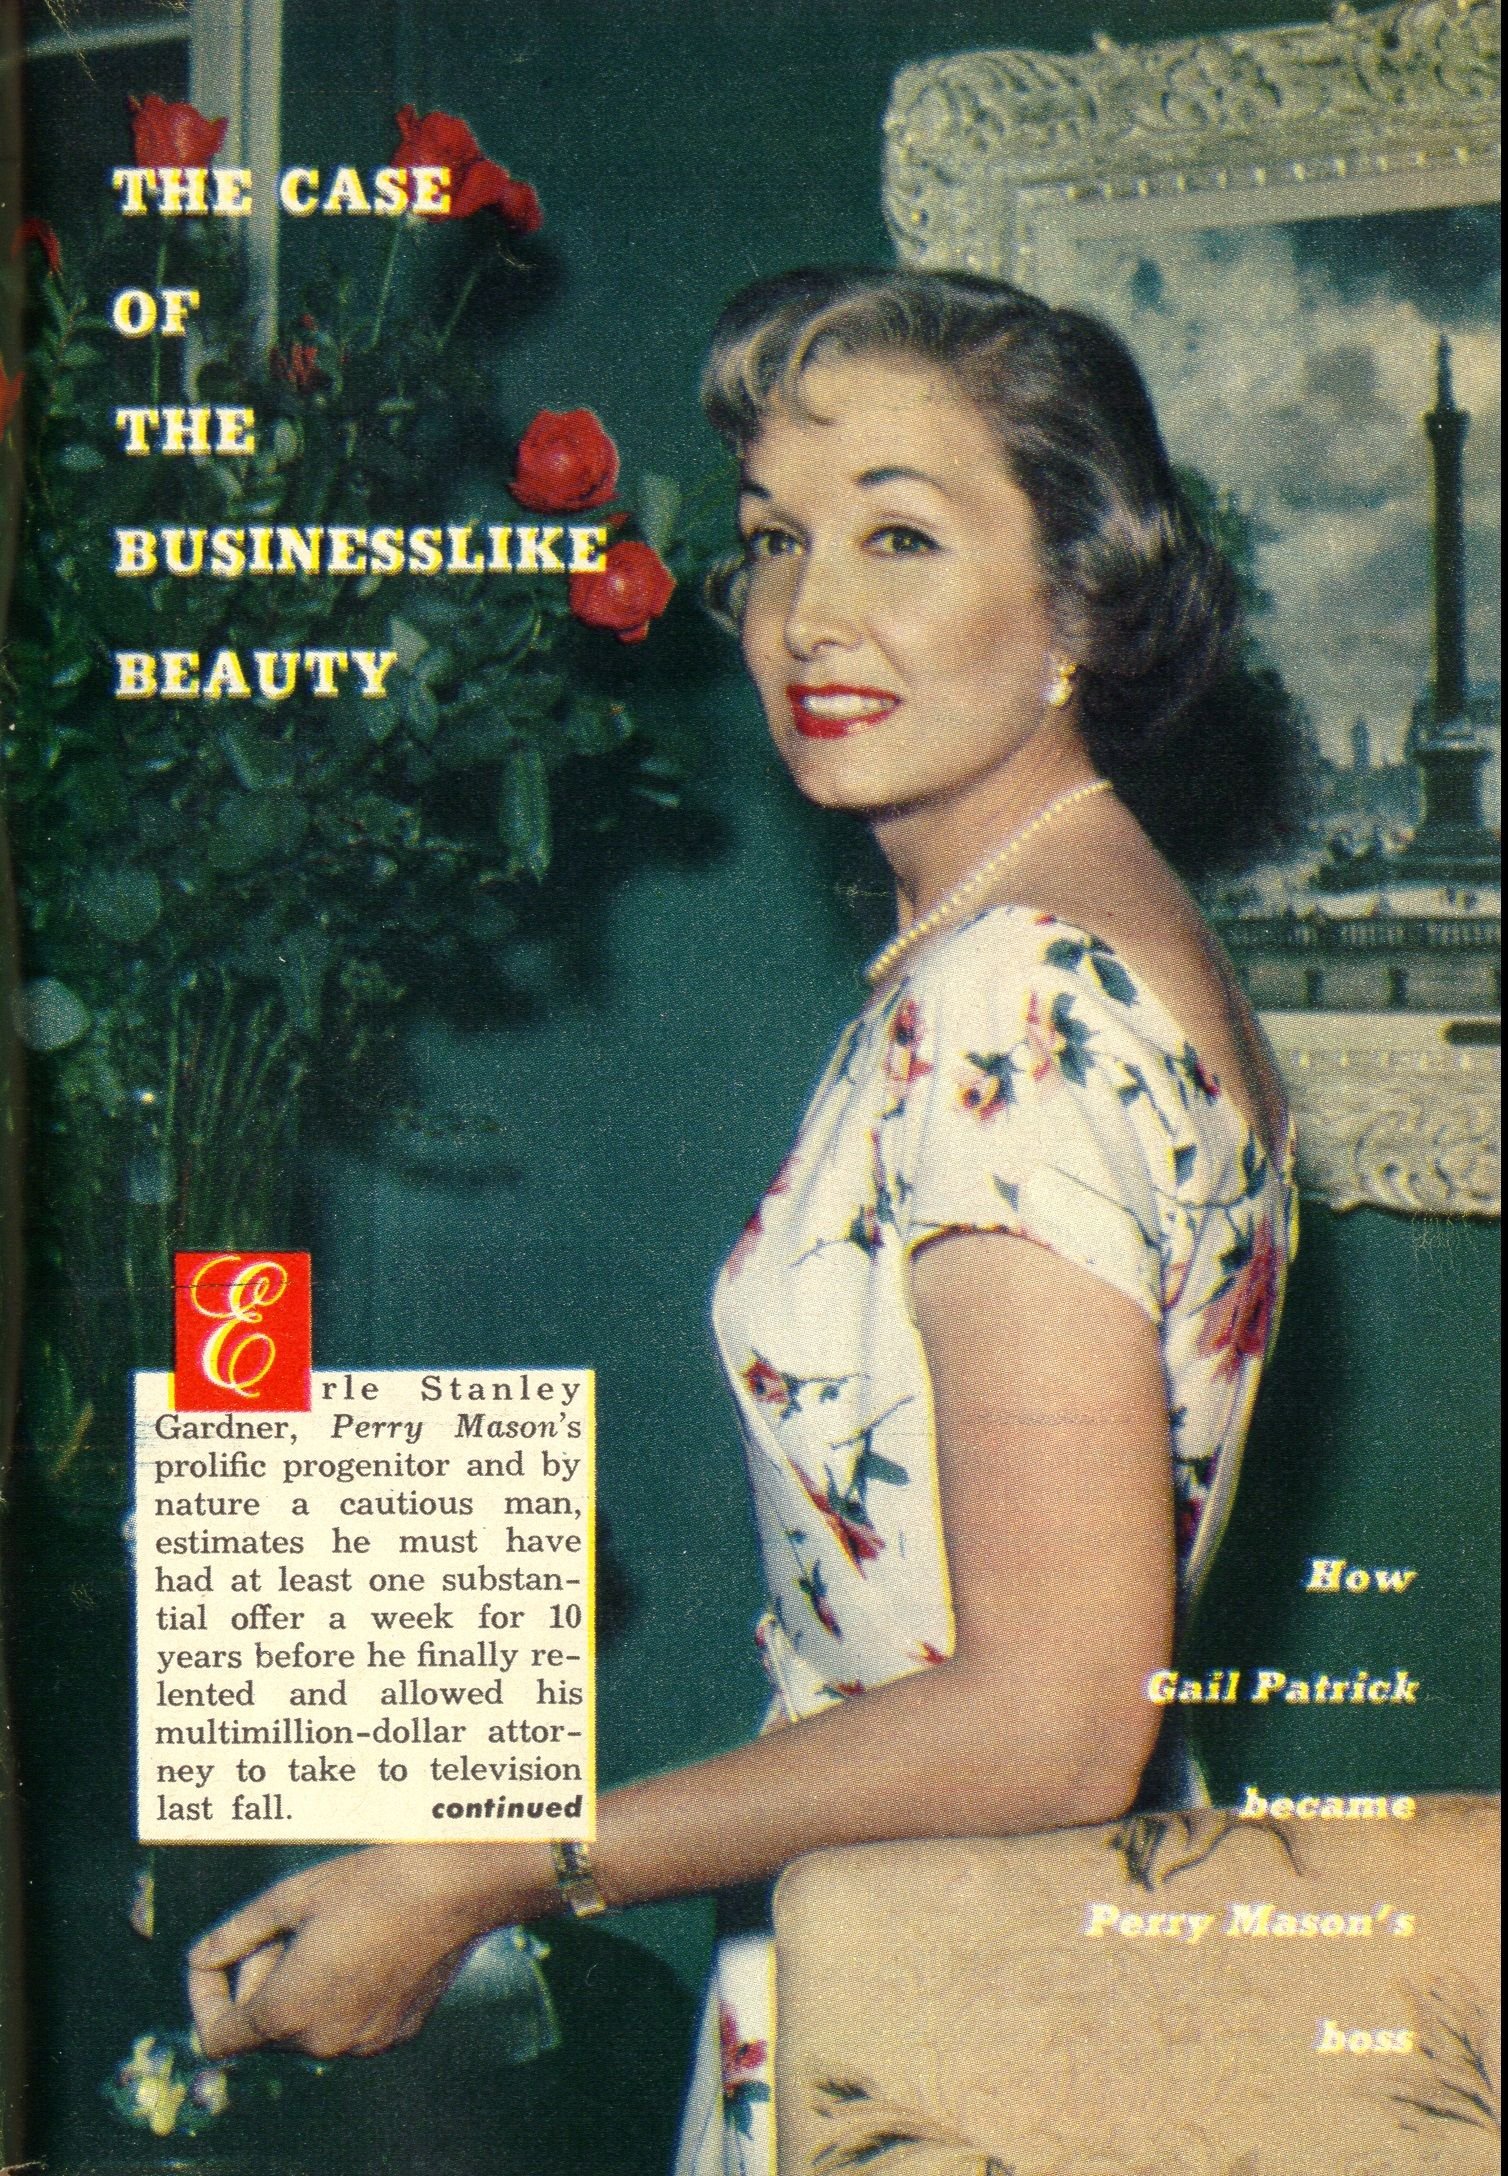 Gail Patrick Executive Producer Of The Perry Mason Tv Series 1957 1966 From Tv Guide June 23 1958 From Th Perry Mason Tv Series Perry Mason Gail Patrick